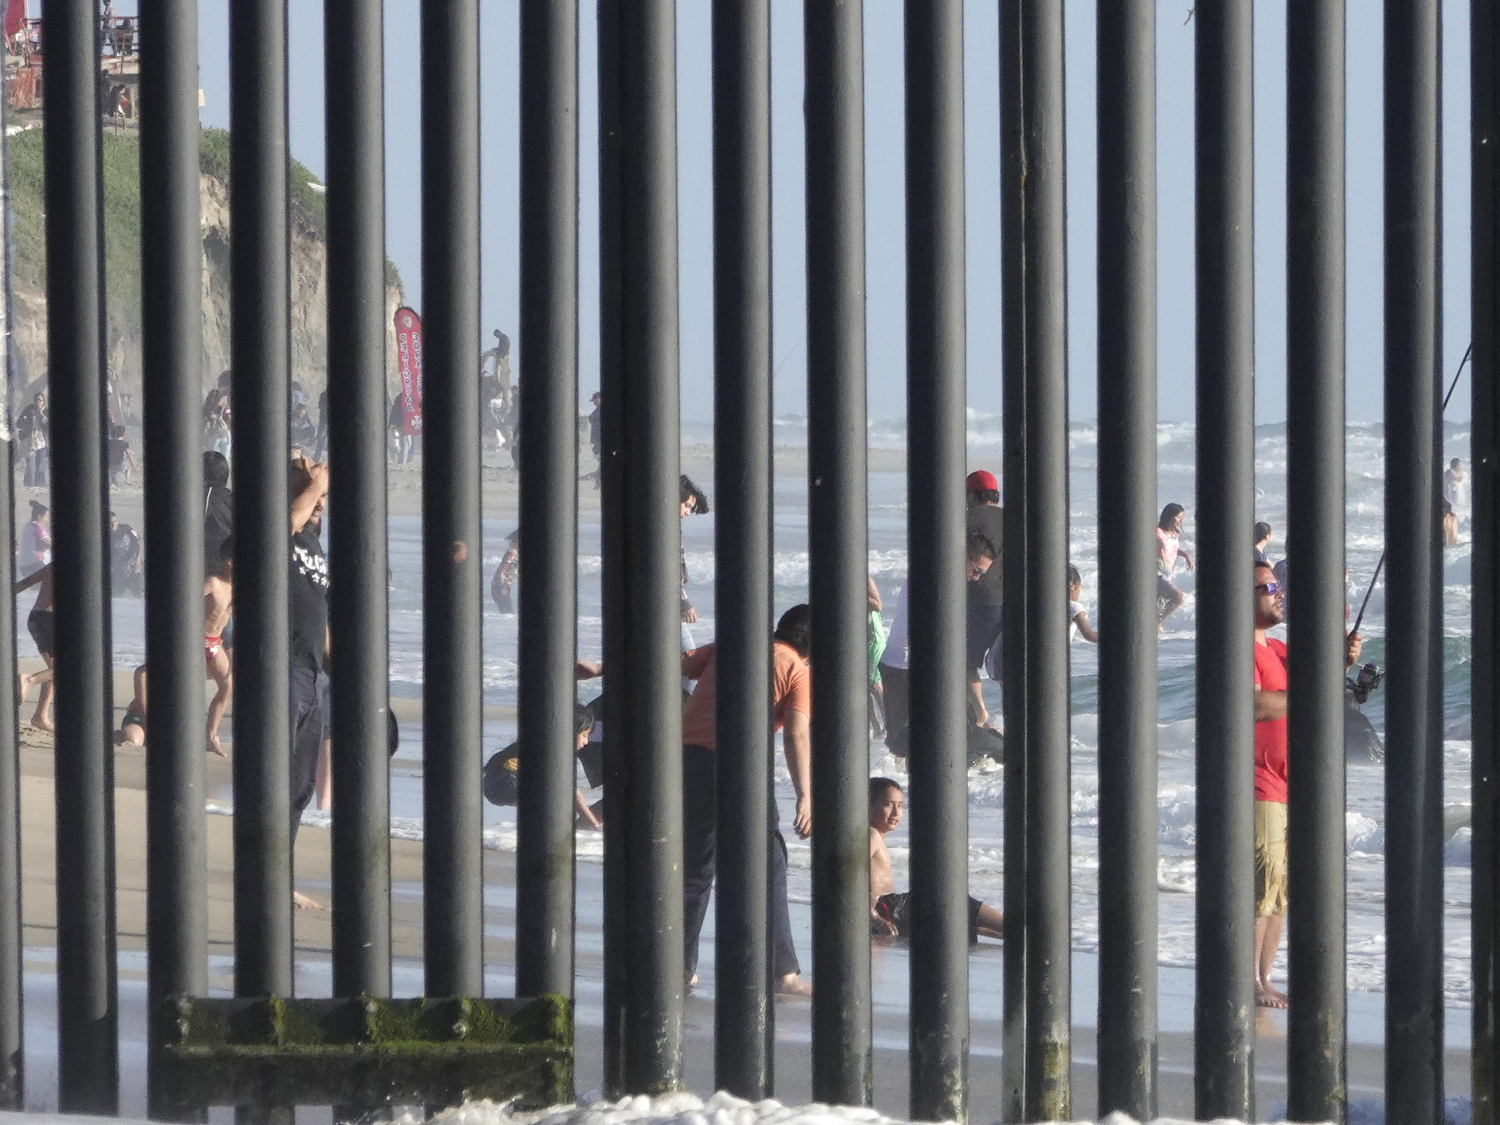 2019. San Diego, California. USA.  The Tijuana beach seen through the border wall built by the United States to prevent illegal immigration.